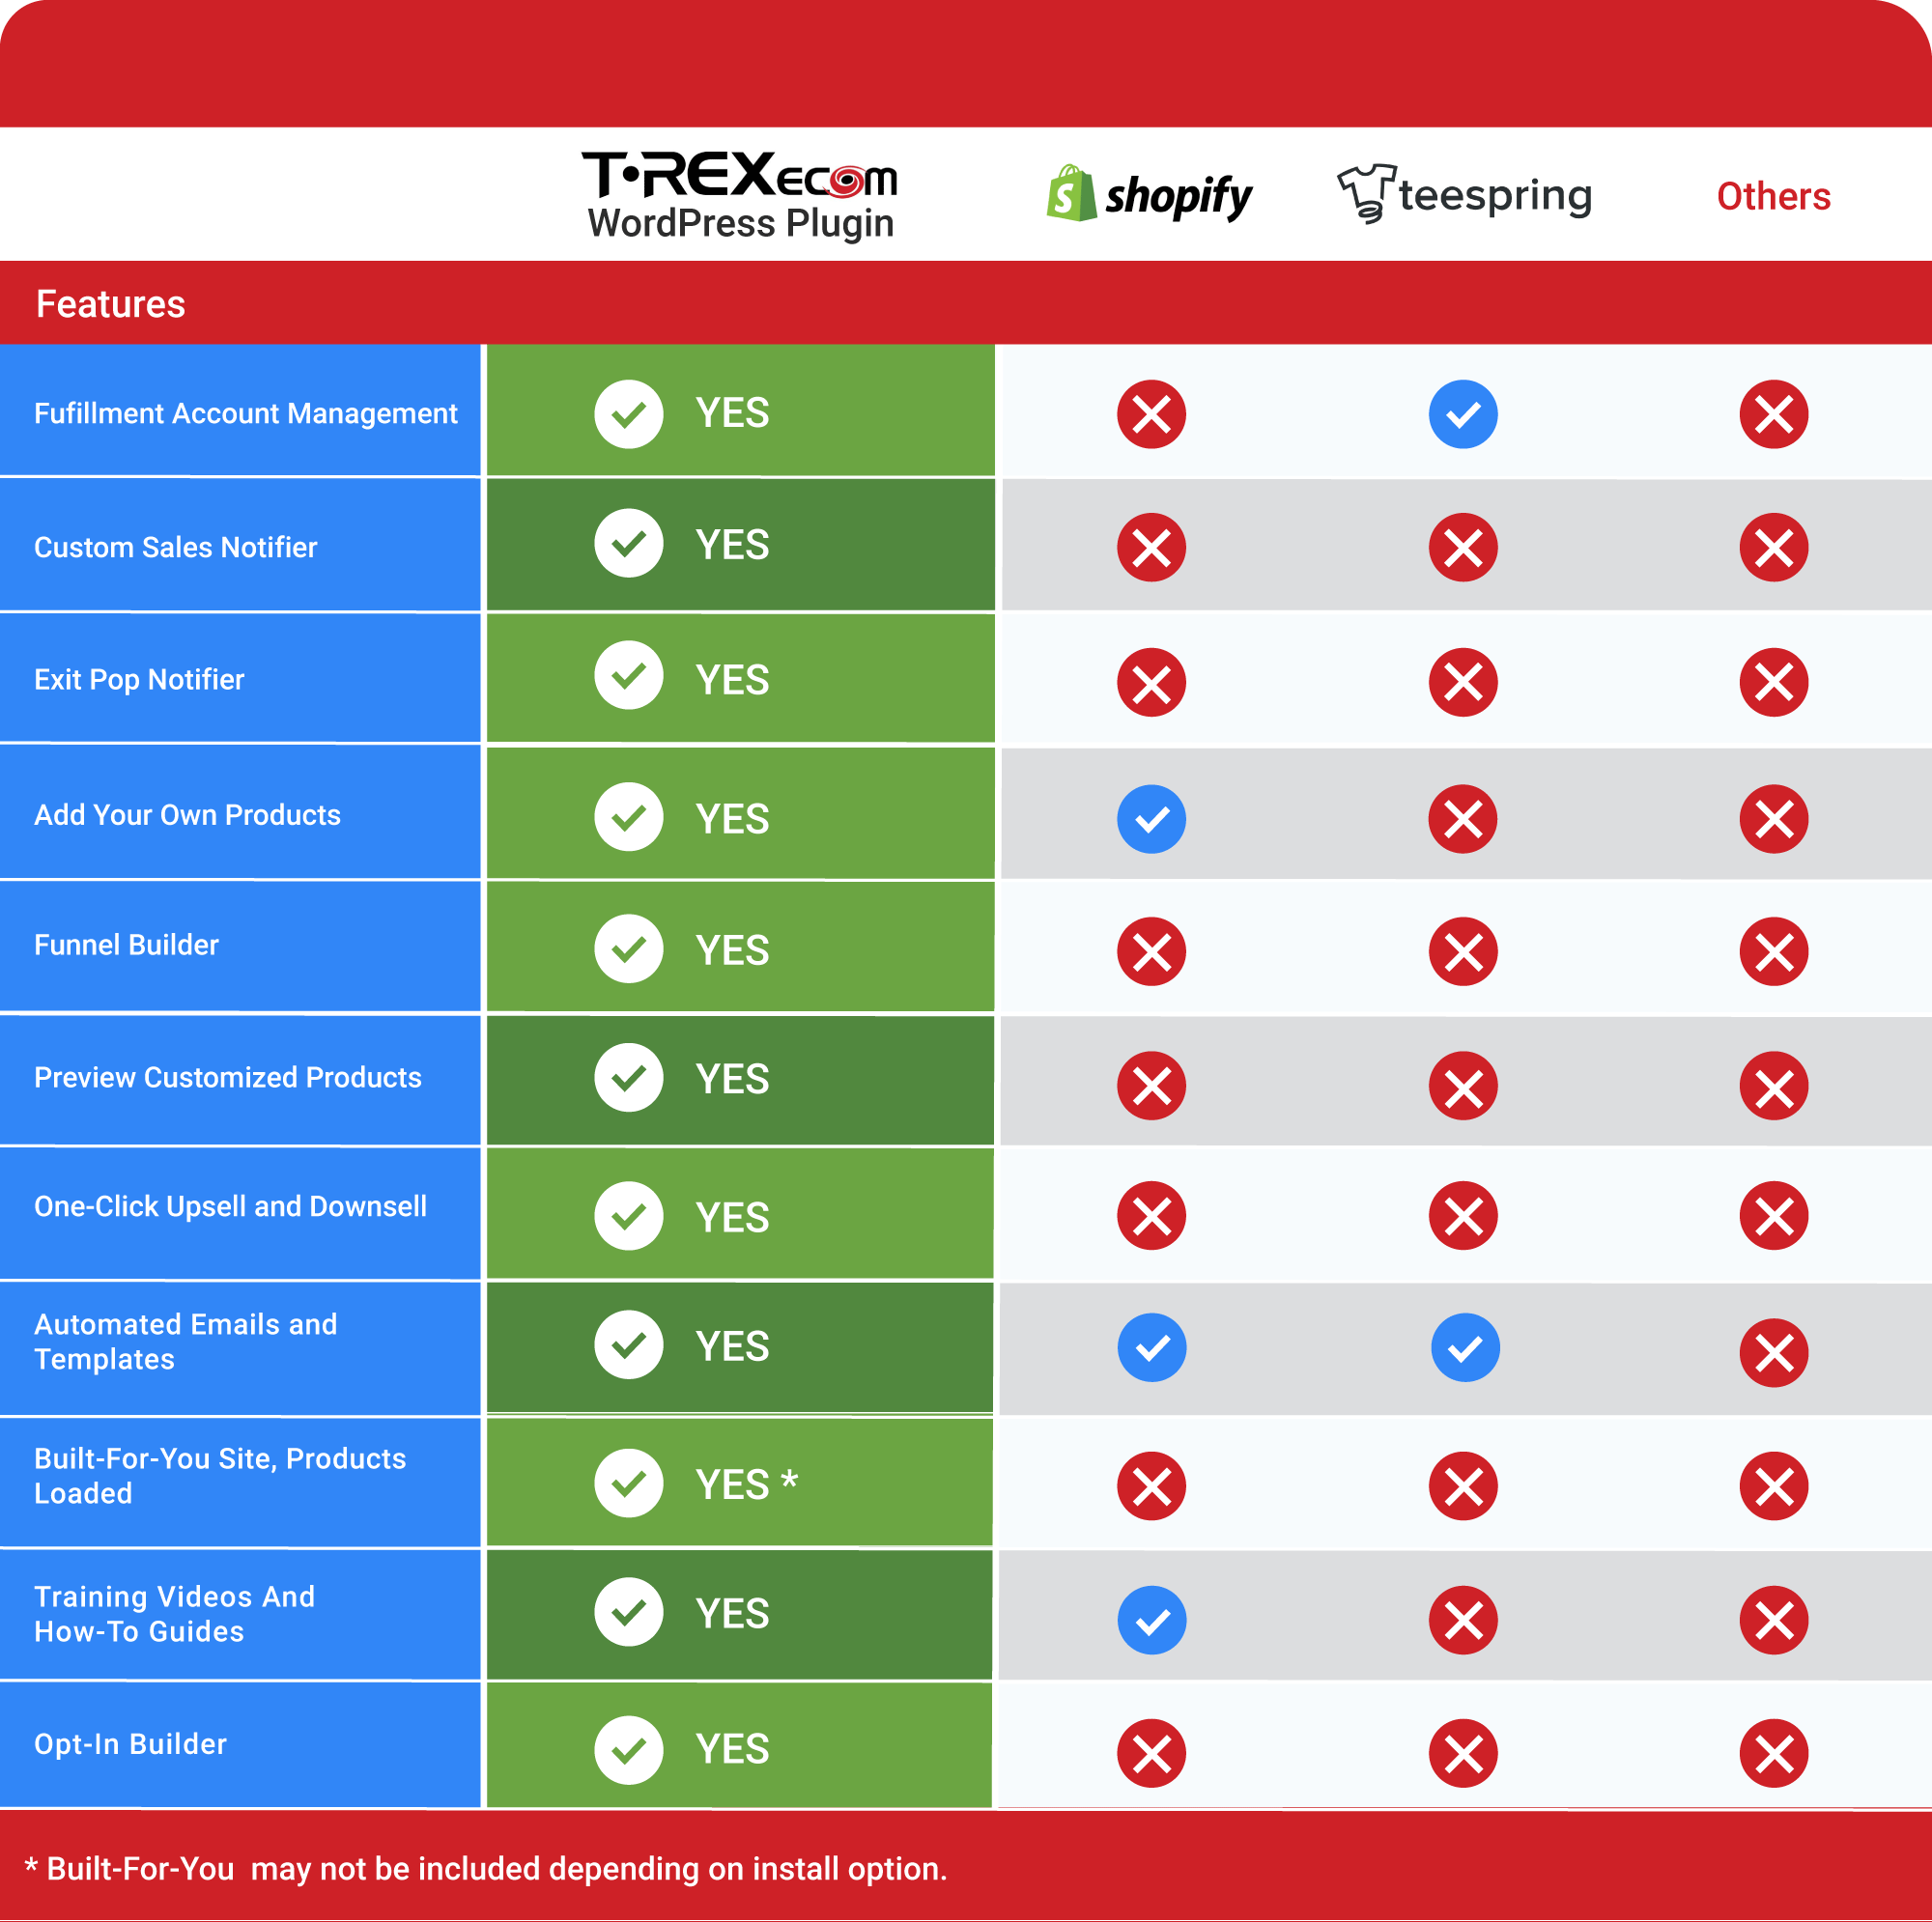 comparison of t-rex, shopify, teespring, and other ecommerce platforms